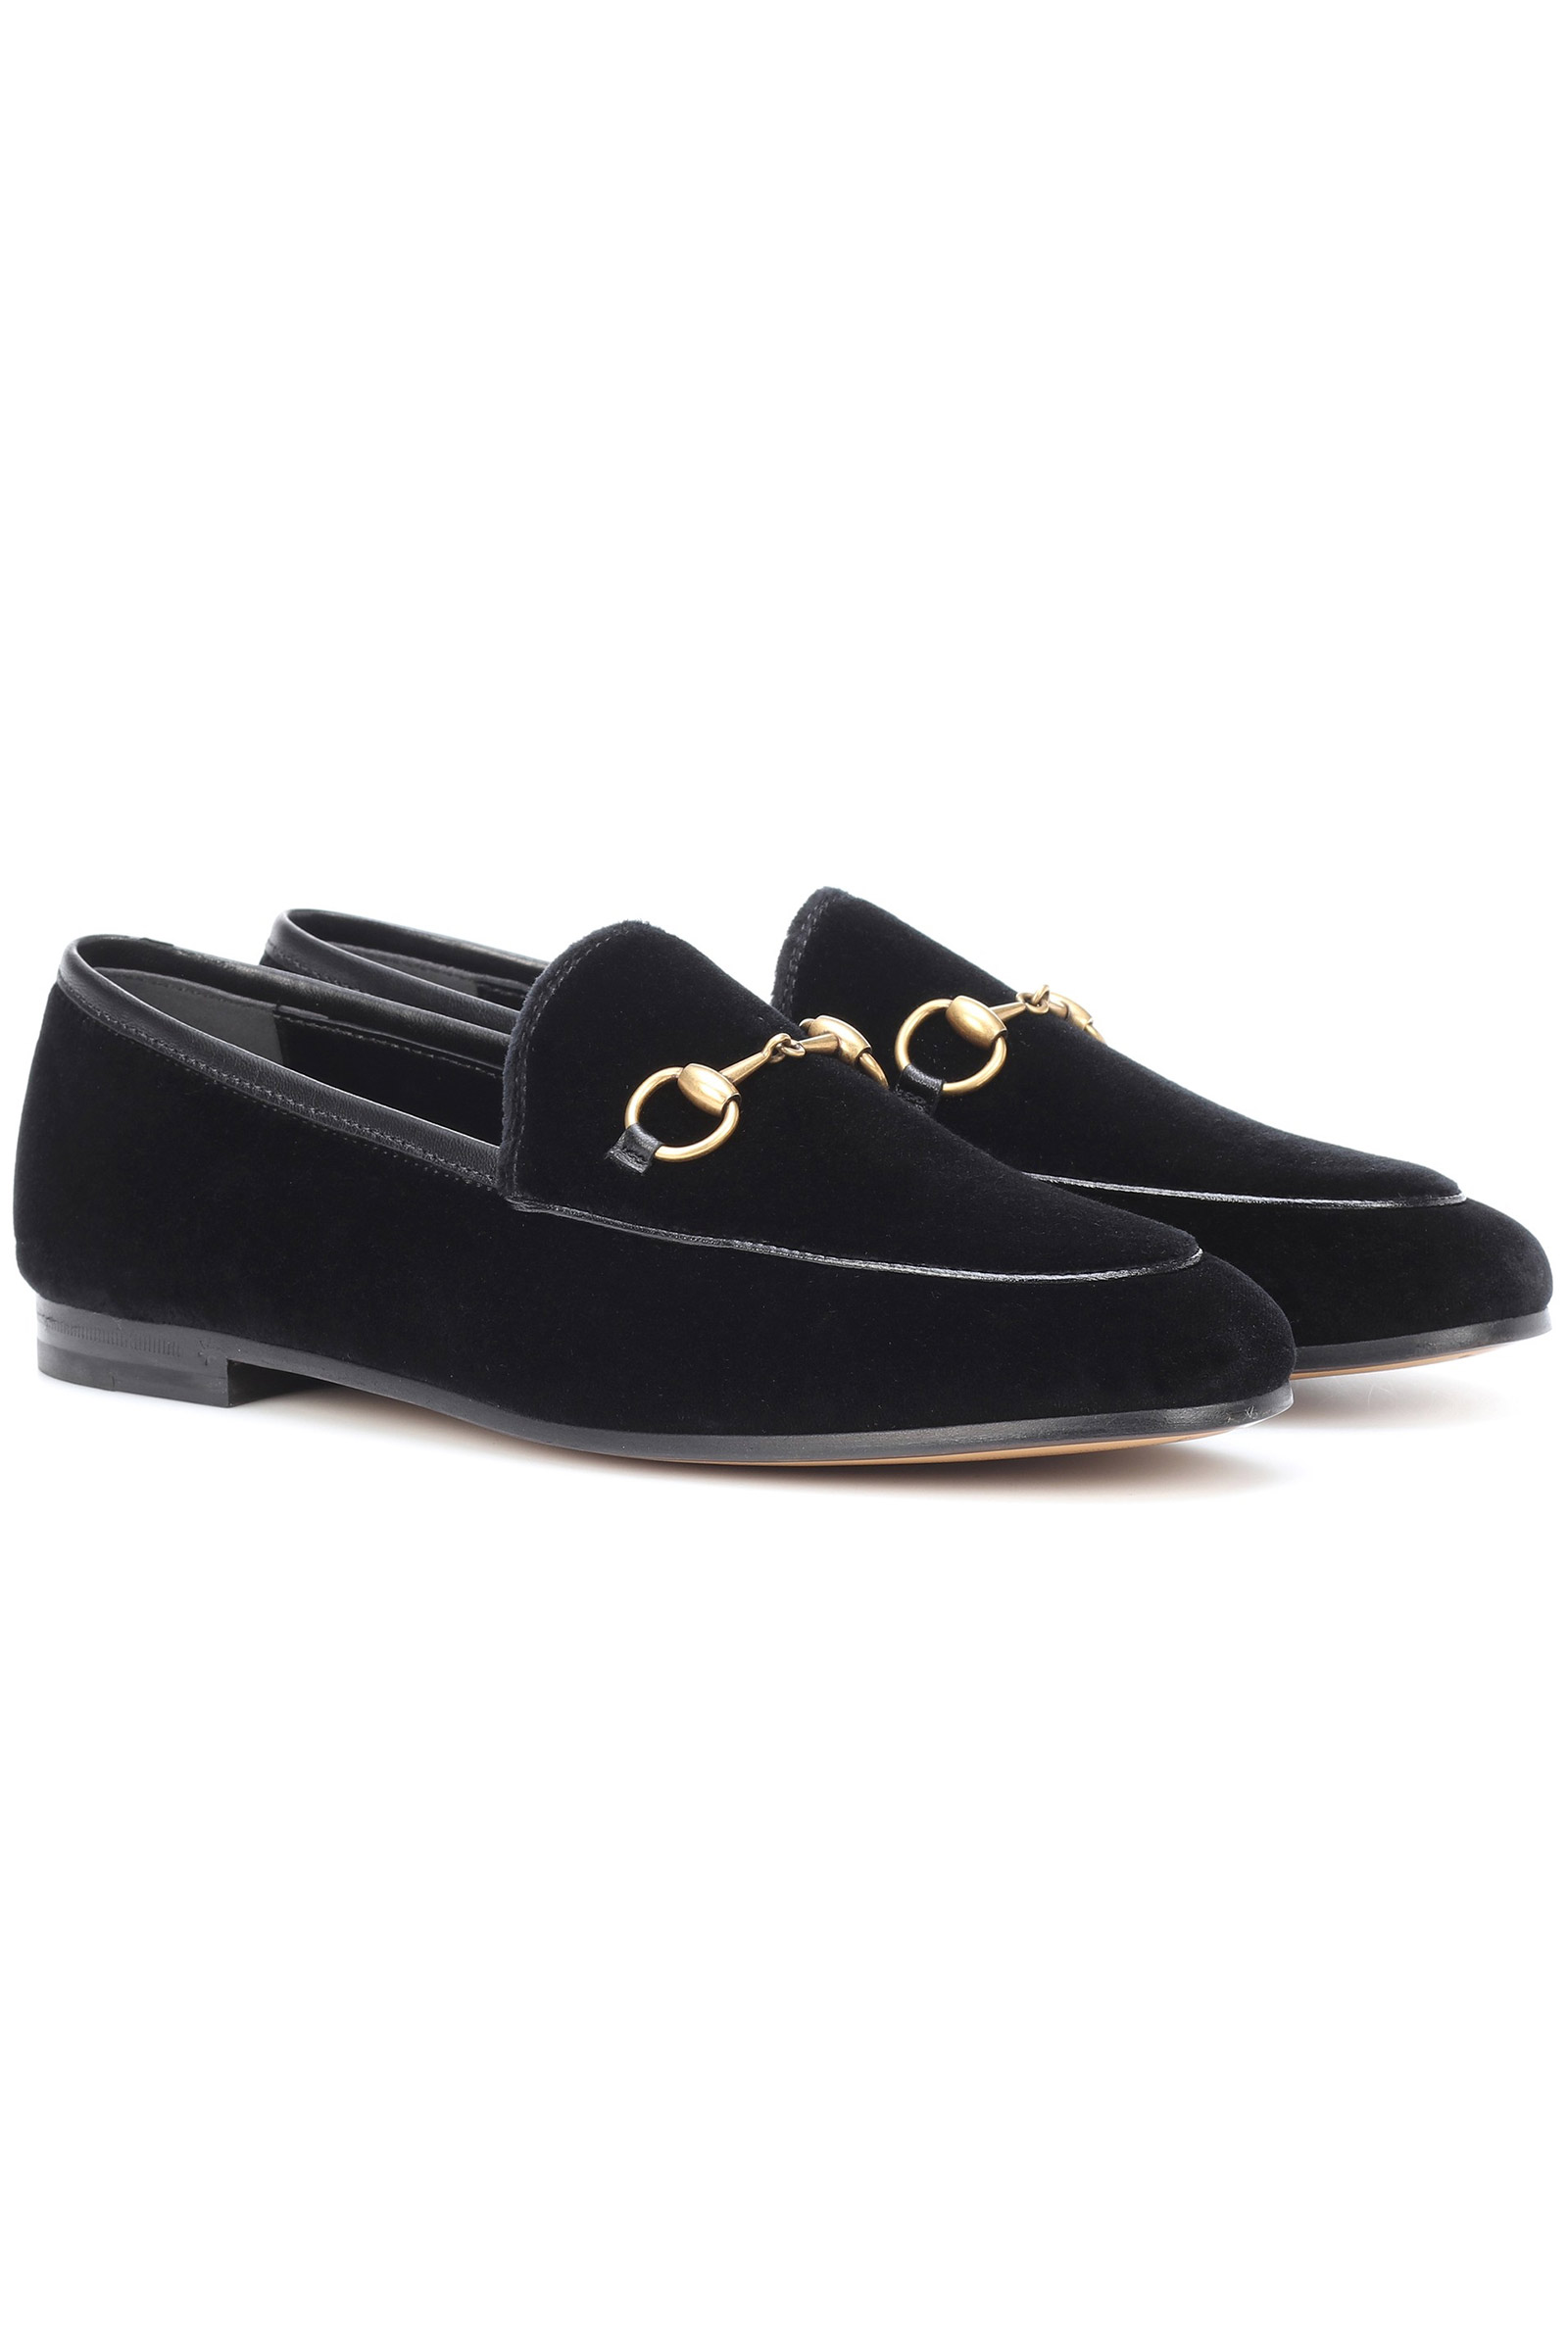 Click to Buy Gucci Jordaan Velvet Loafers